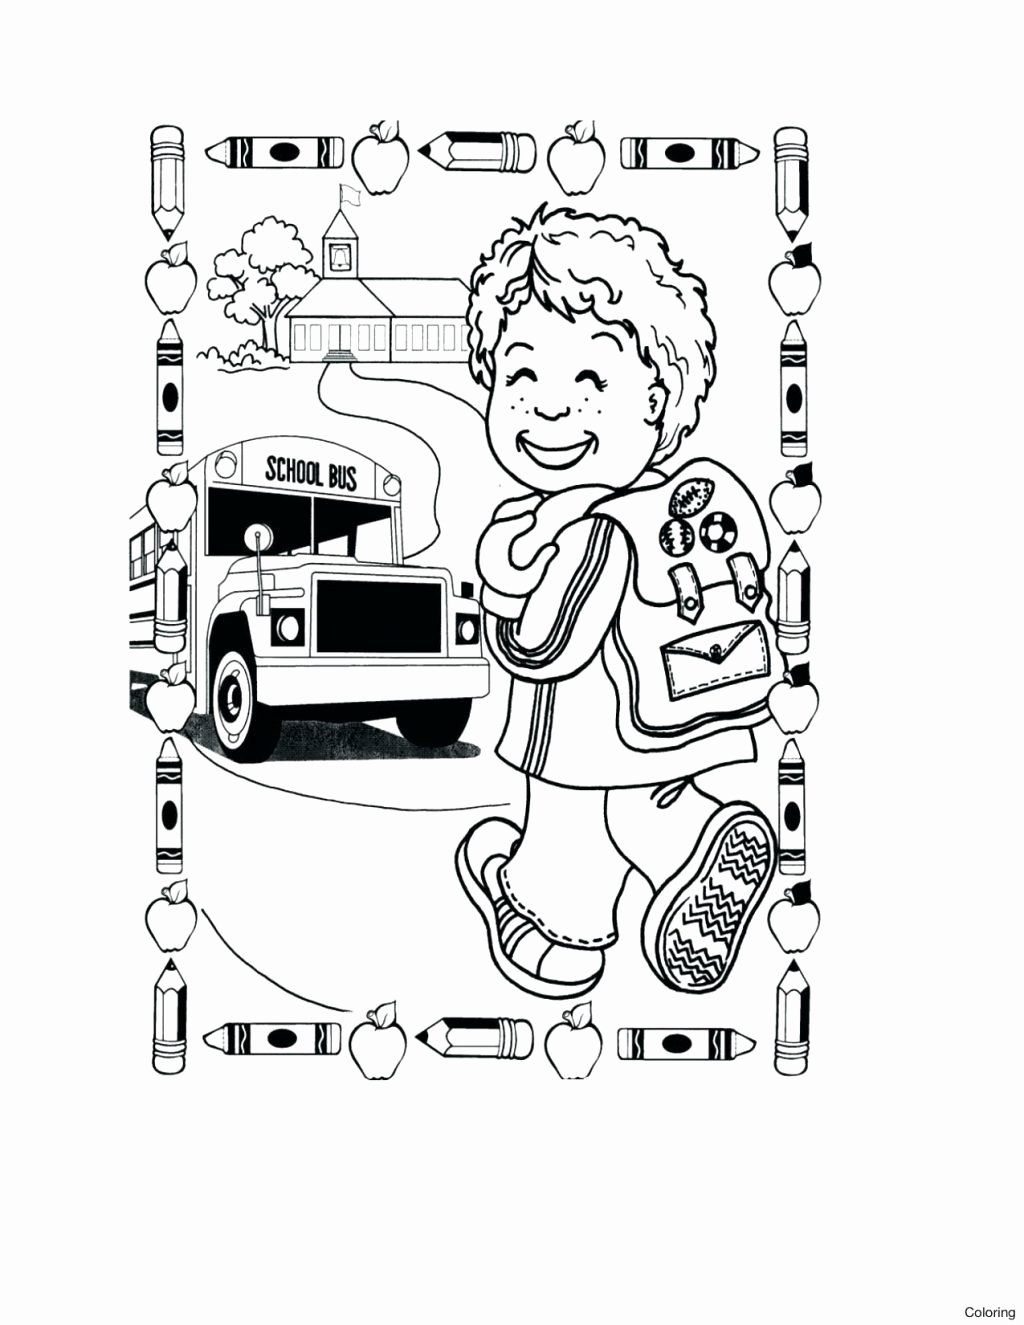 Transport Coloring Pages Free Printable Best Of Coloring Pages Coloring Pages Back To Sch School Coloring Pages Alphabet Coloring Pages Coloring Pages For Boys